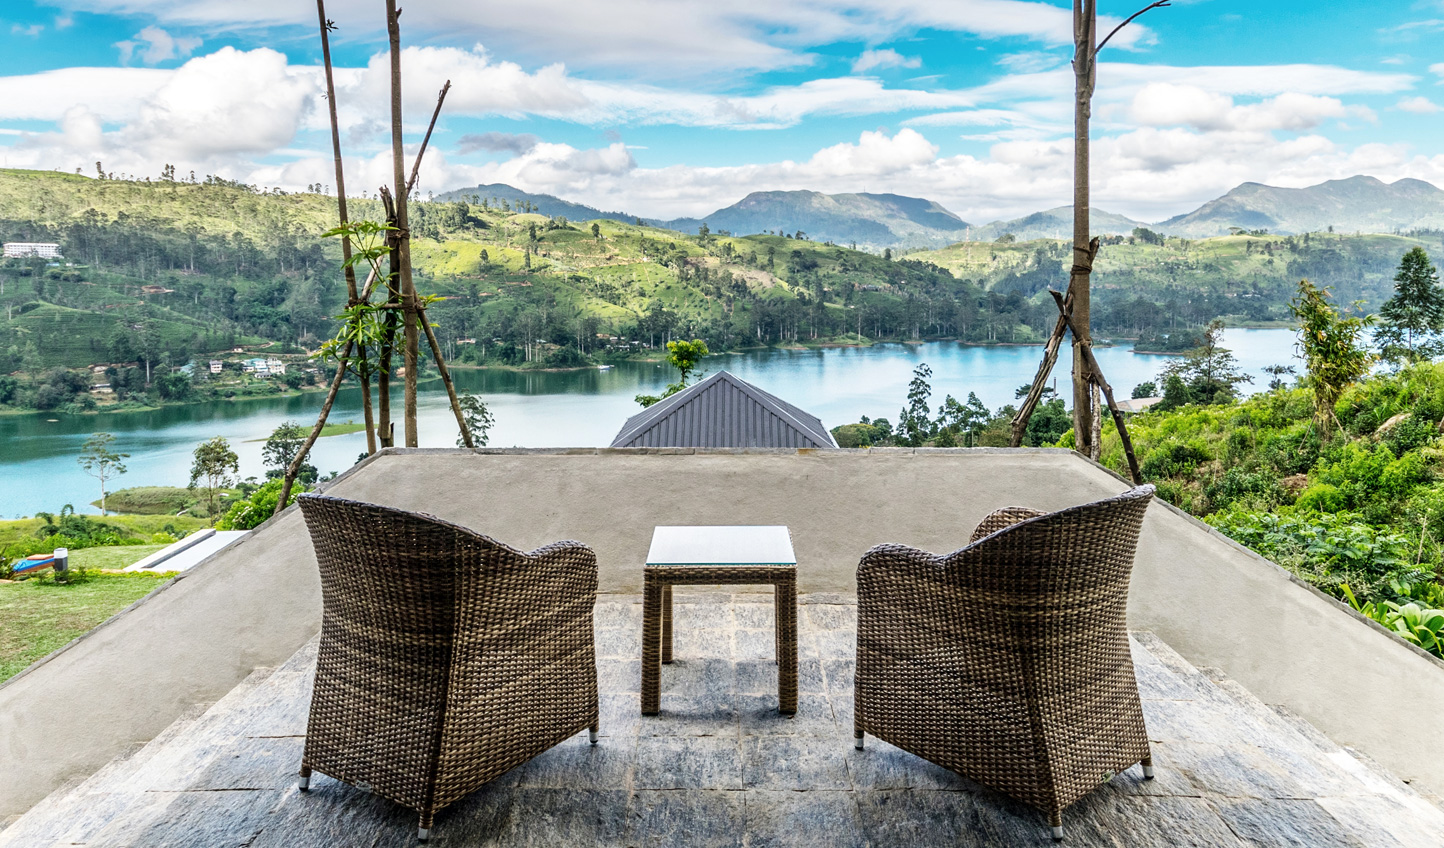 Head outside to soak in the panoramic views of Castlereagh Reservoir and its bordering tea vines